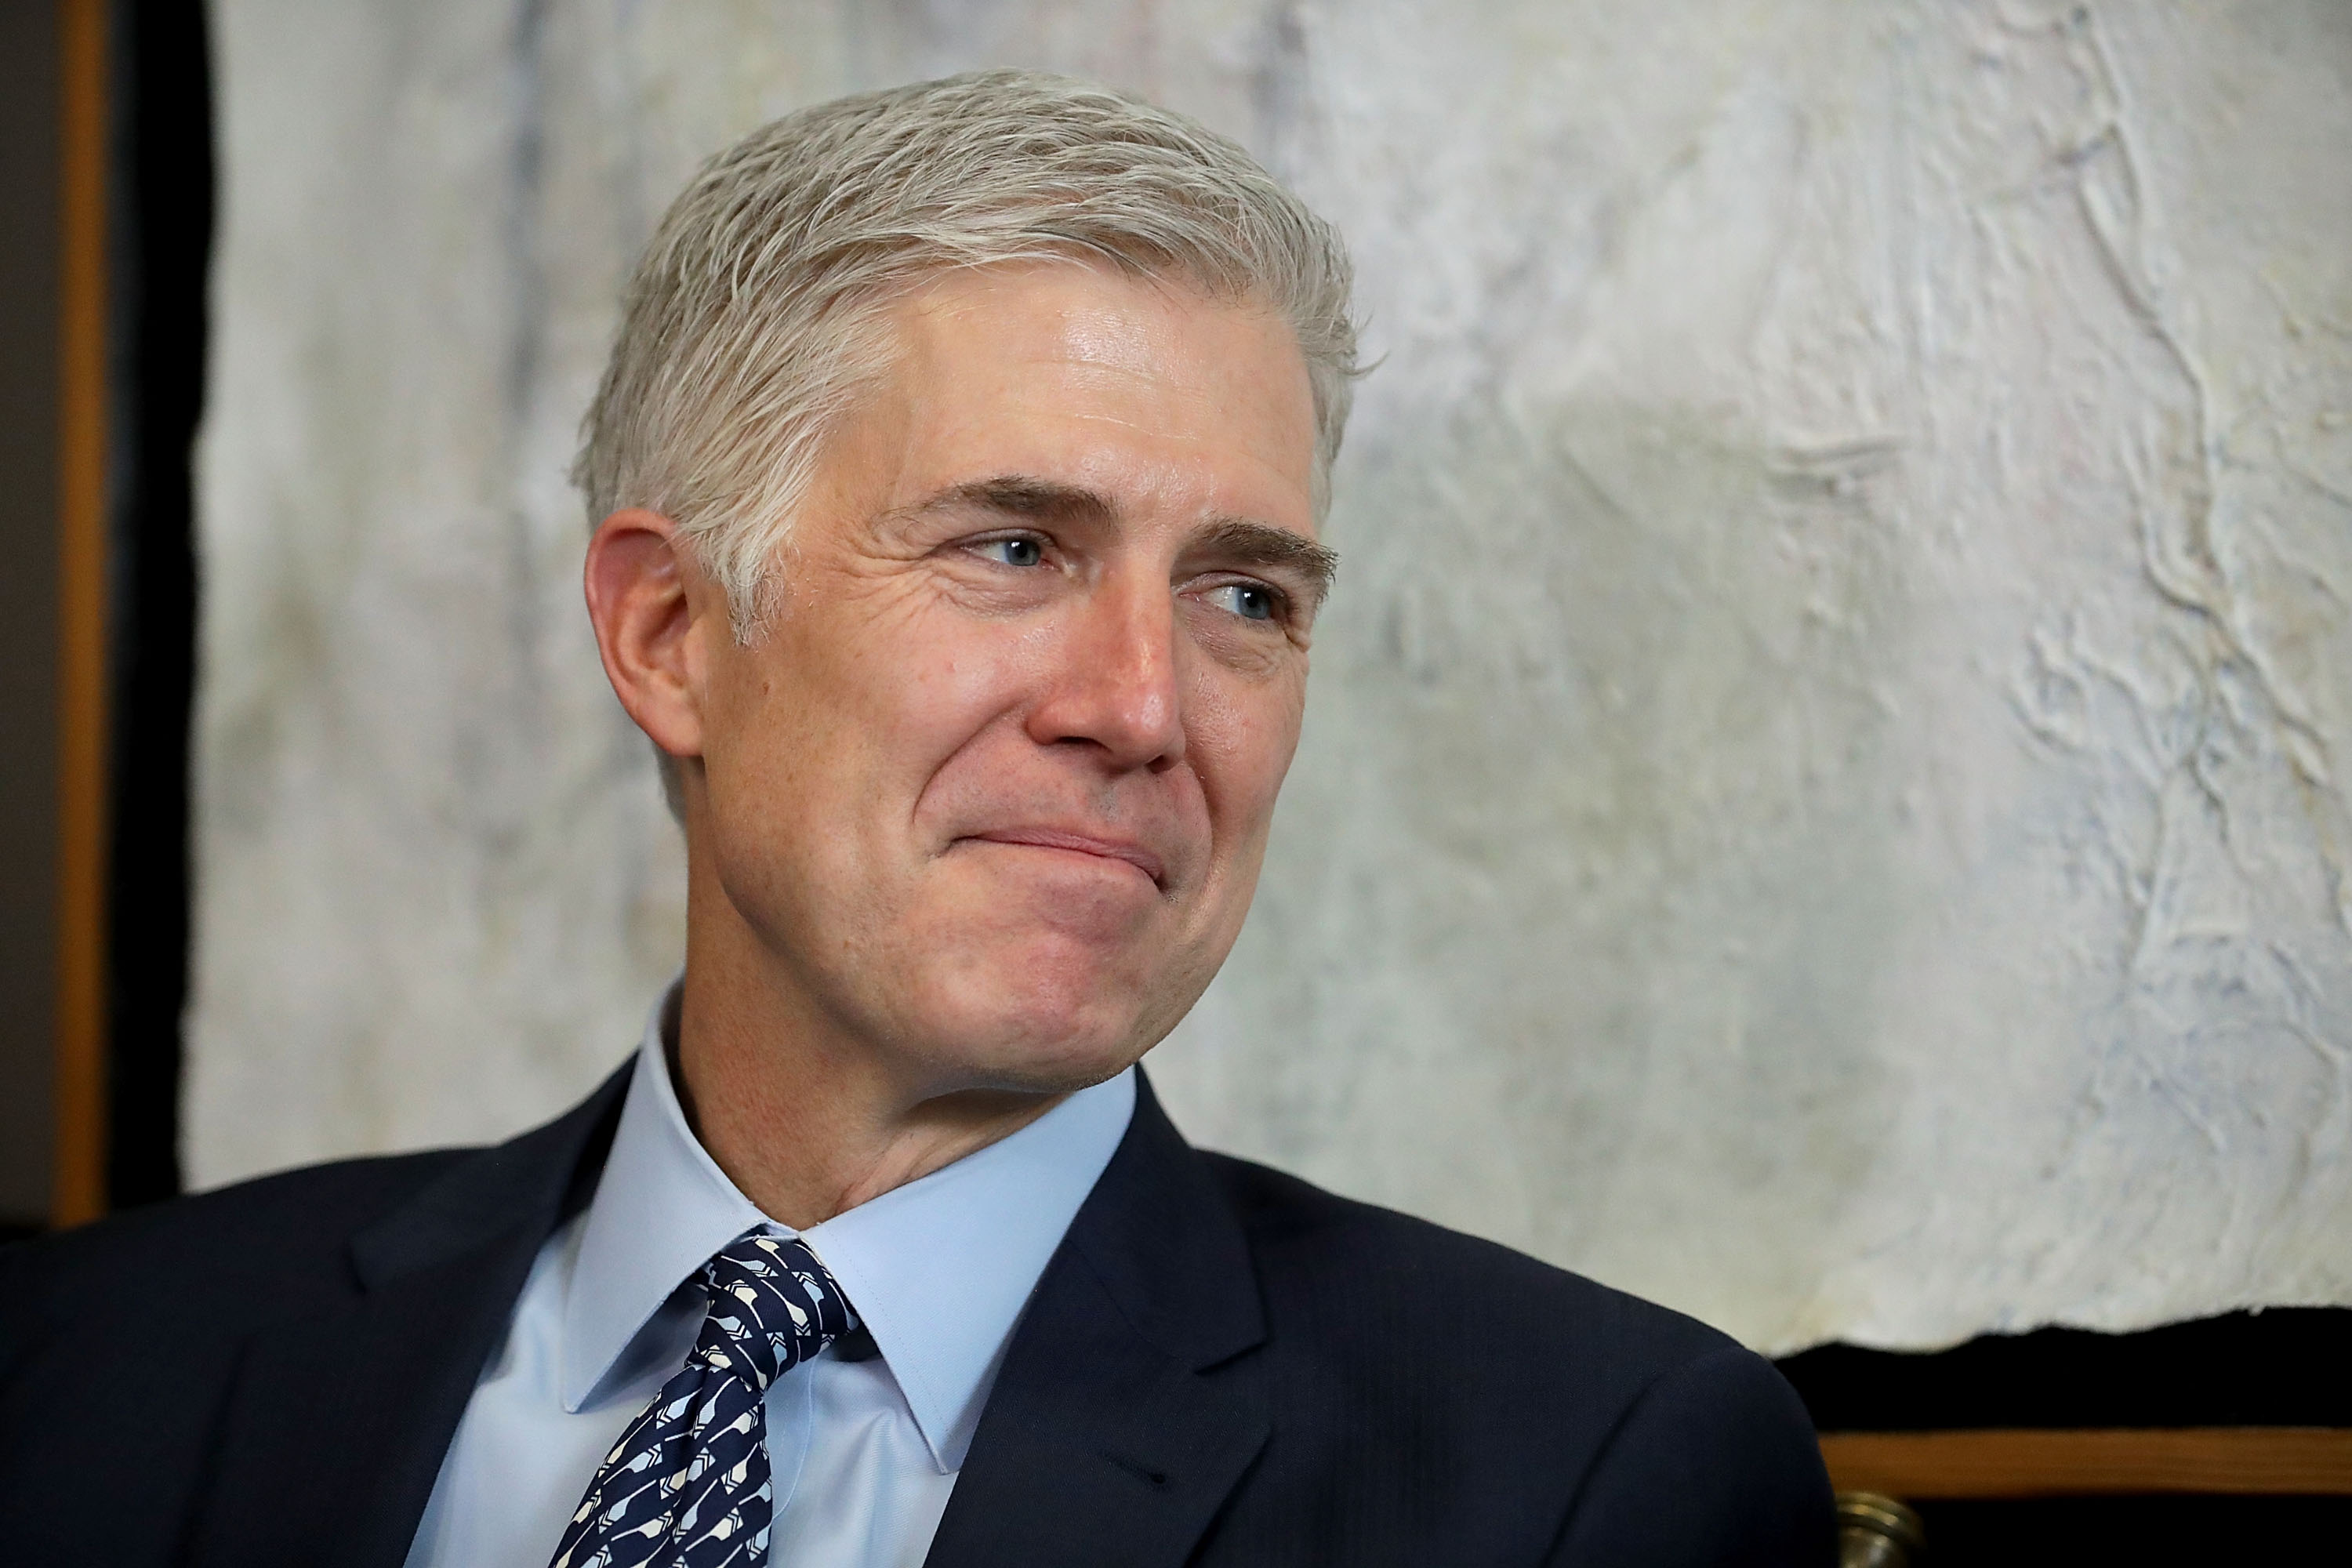 I read Supreme Court nominee Neil Gorsuch's book. It's very revealing.